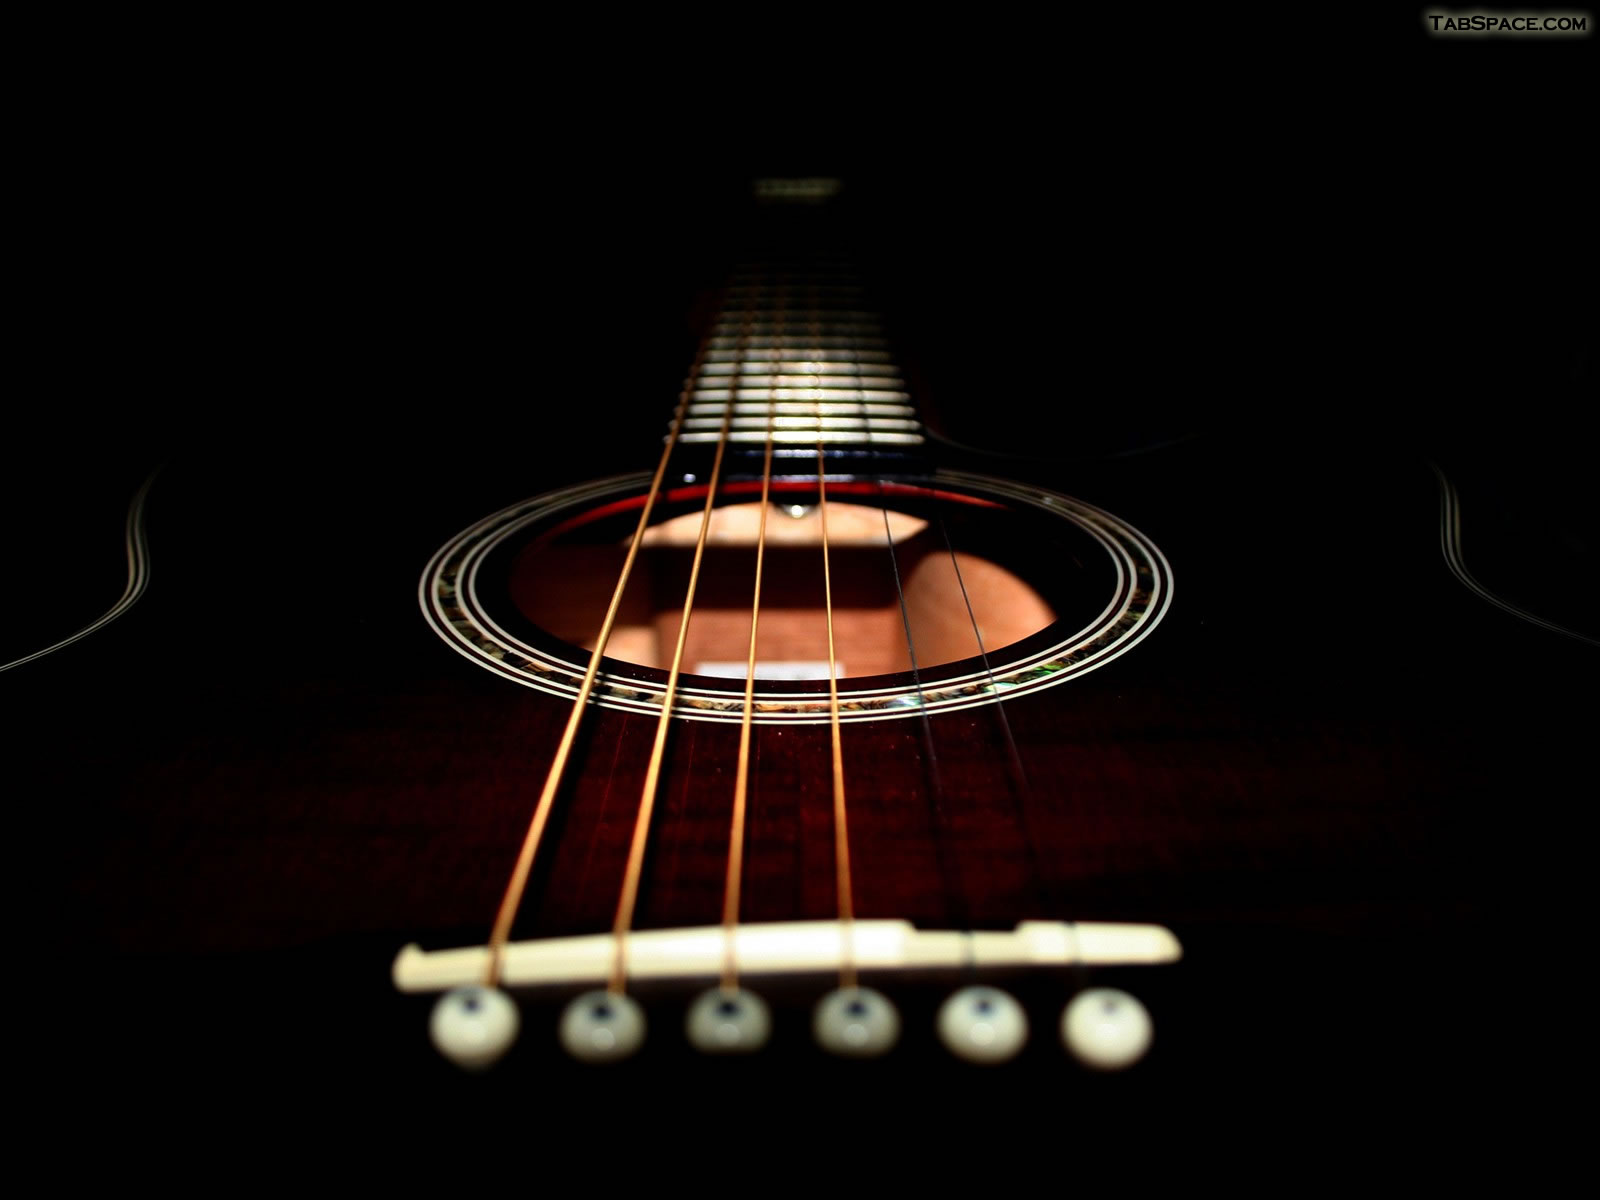 Cool Guitar Wallpapers Hd In Music Imagesci Guitar